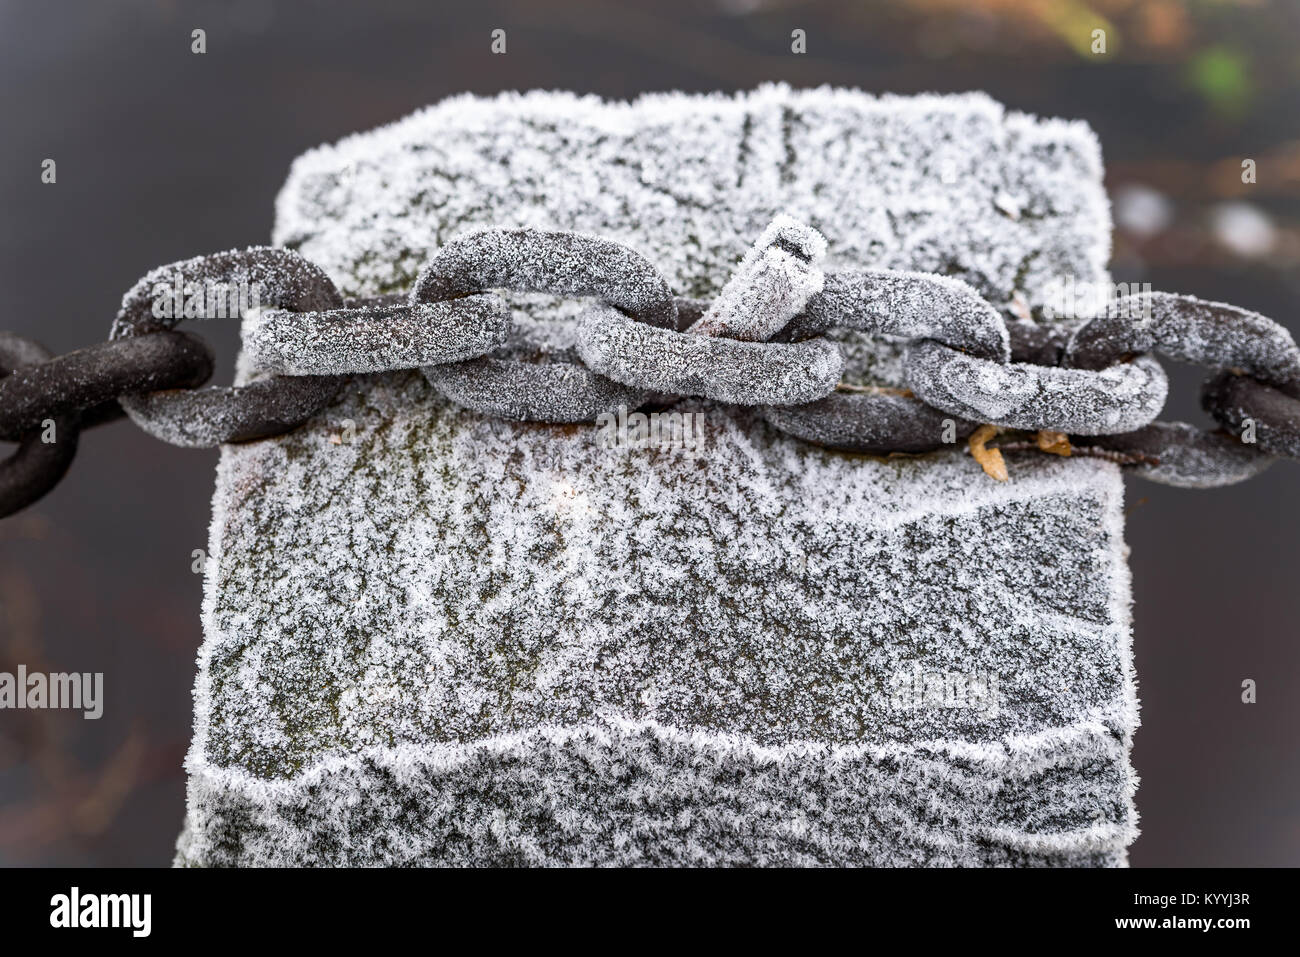 Hoarfrost on iron chain connected to a granite stone pillar. - Stock Image